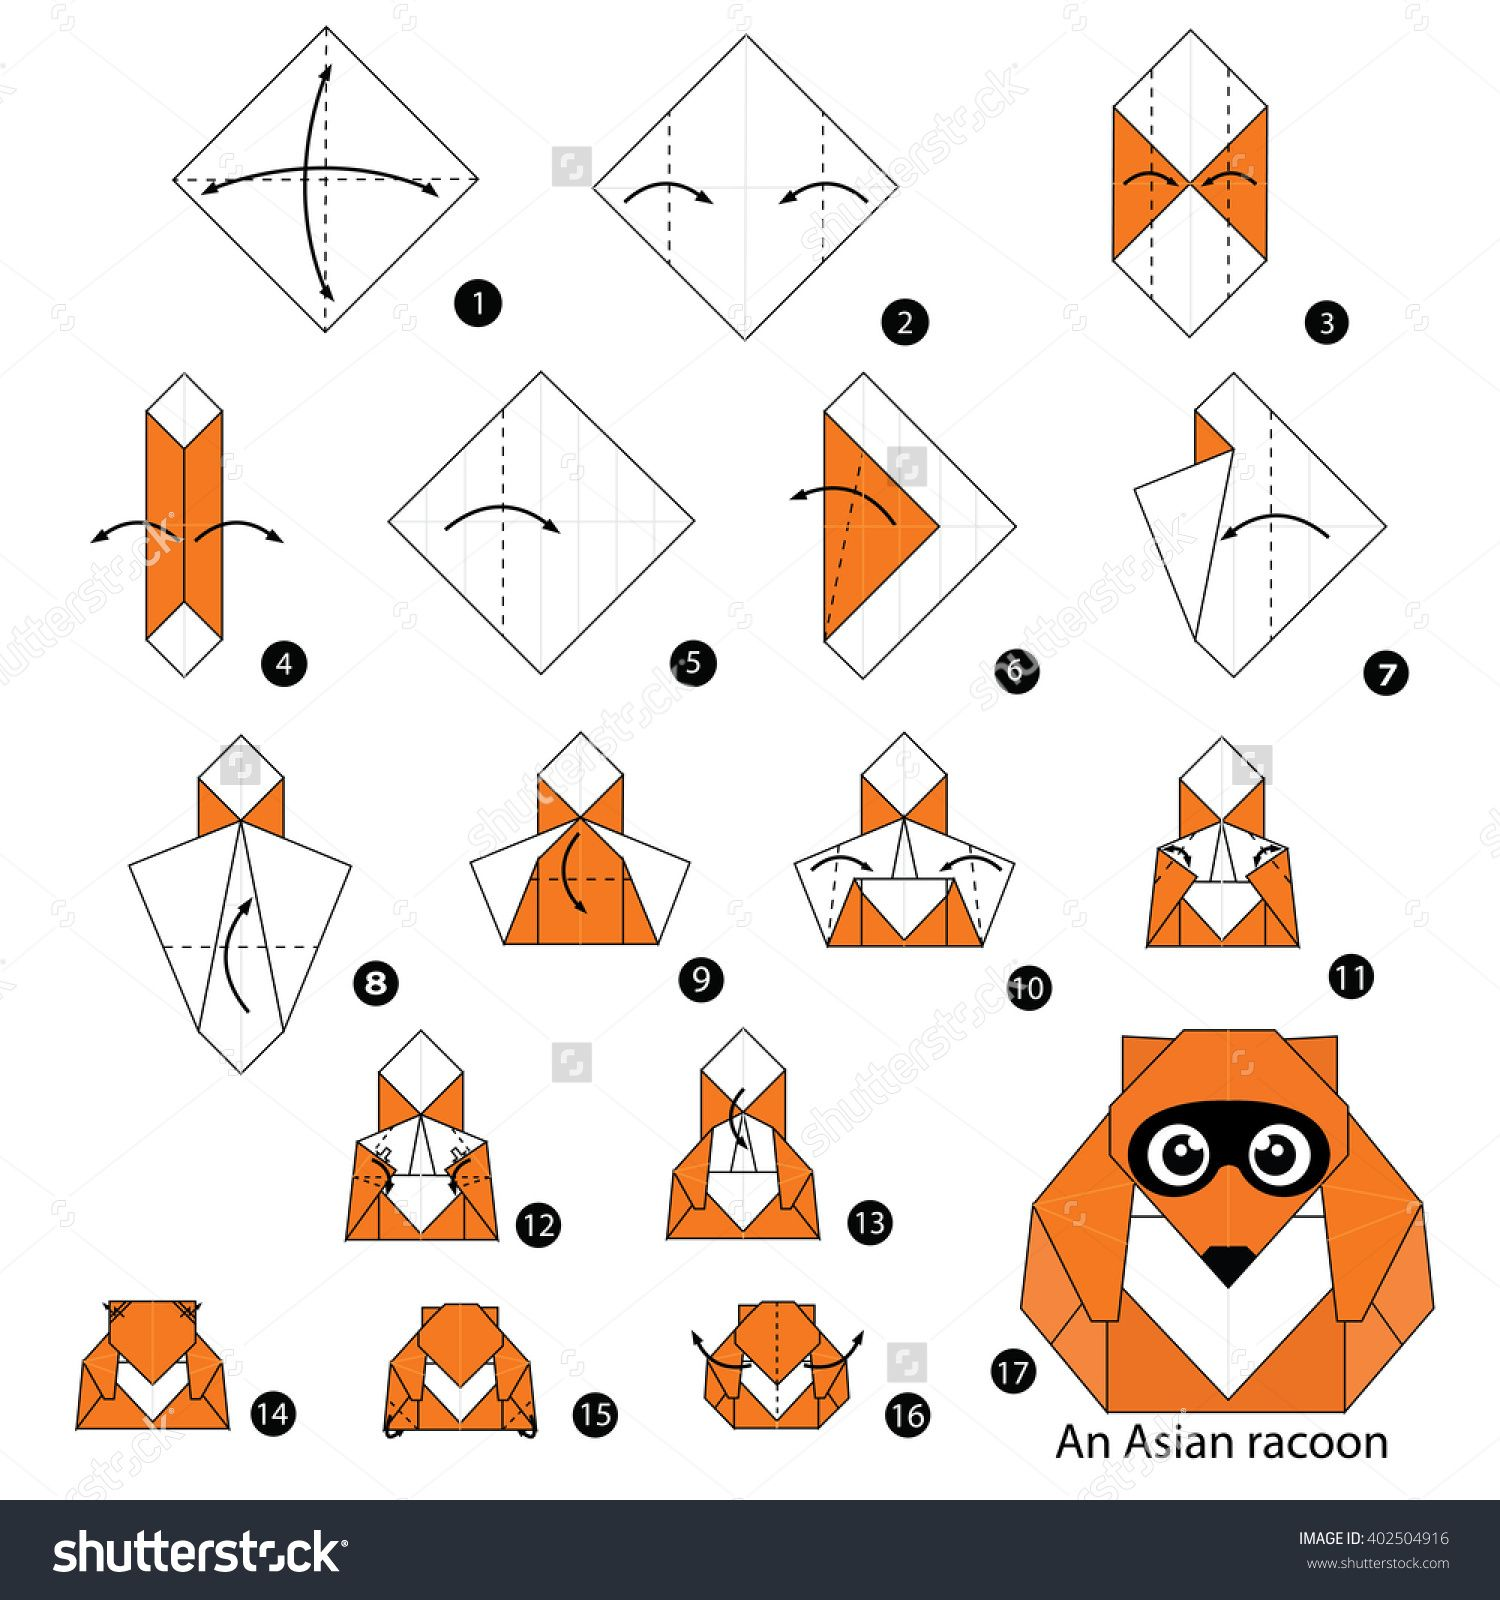 Step by step instructions how to make origami an asian raccoon step by step instructions how to make origami an asian raccoon stock vektorkp 402504916 jeuxipadfo Images